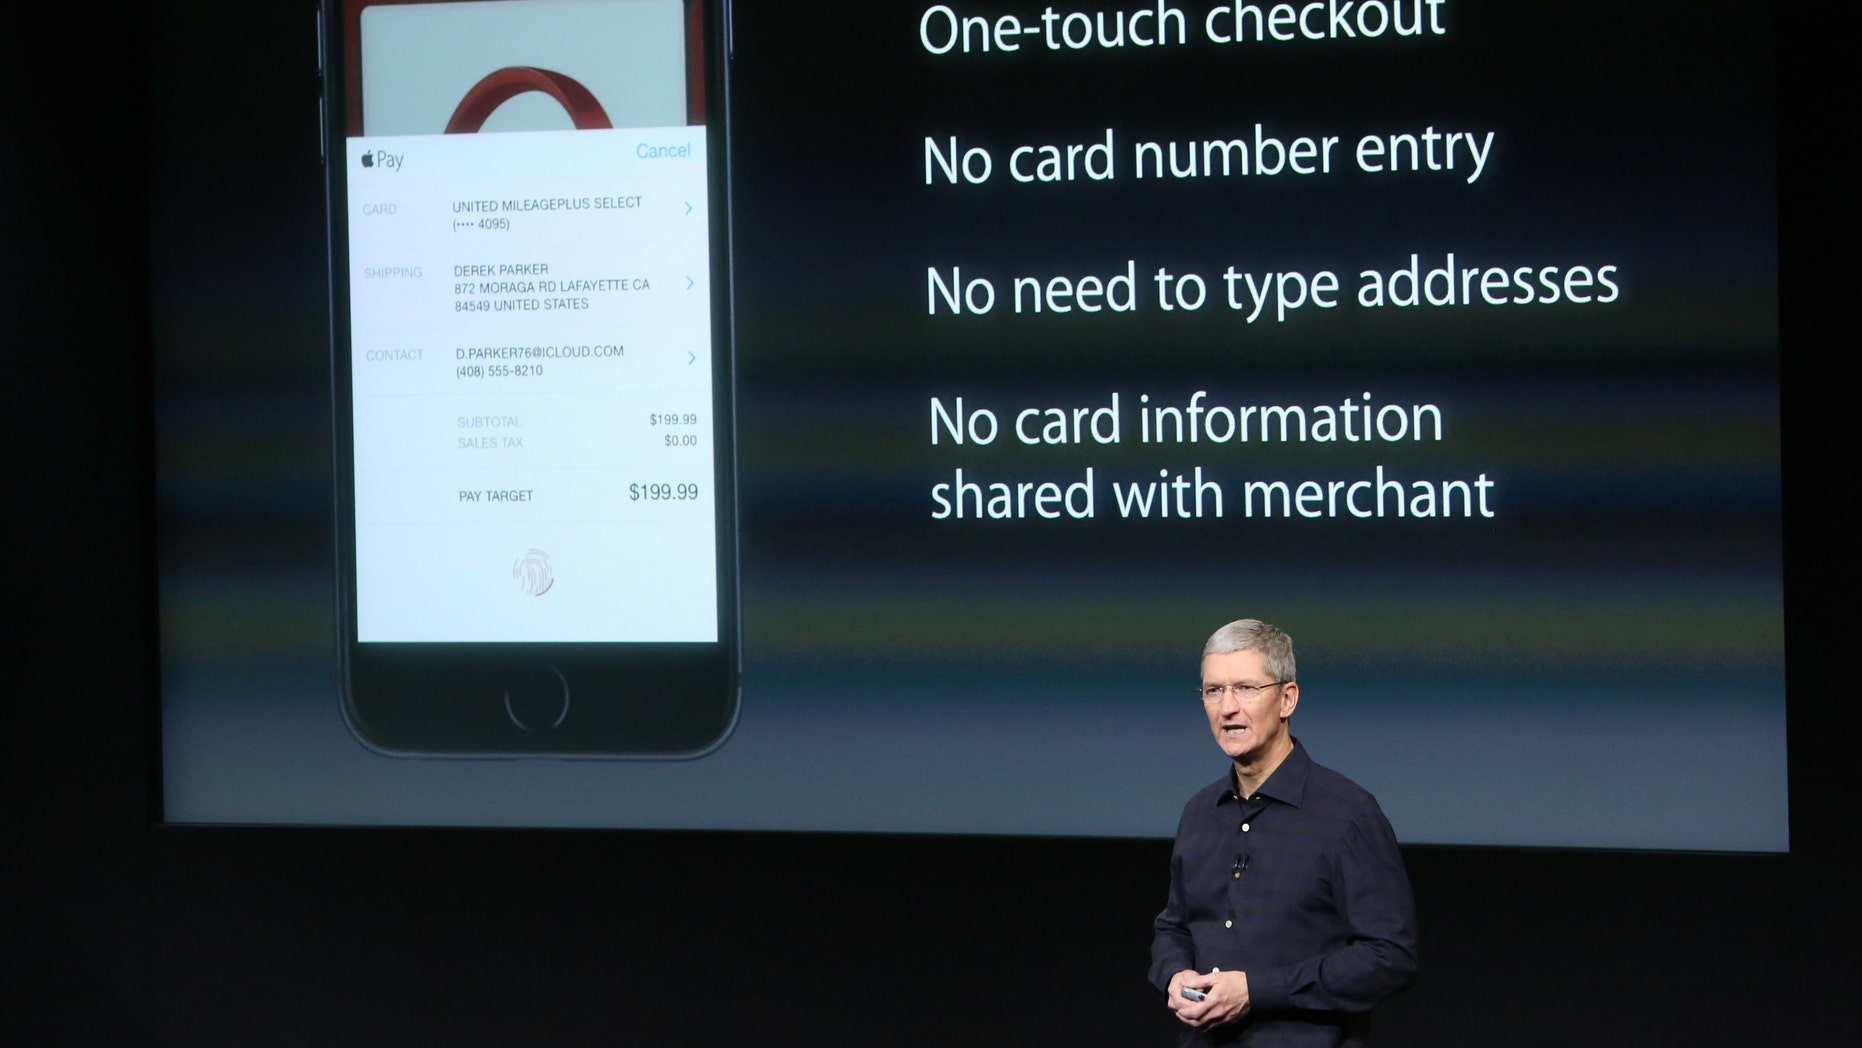 Apple CEO Tim Cook speaks about the Apple Pay service during a presentation at Apple headquarters.